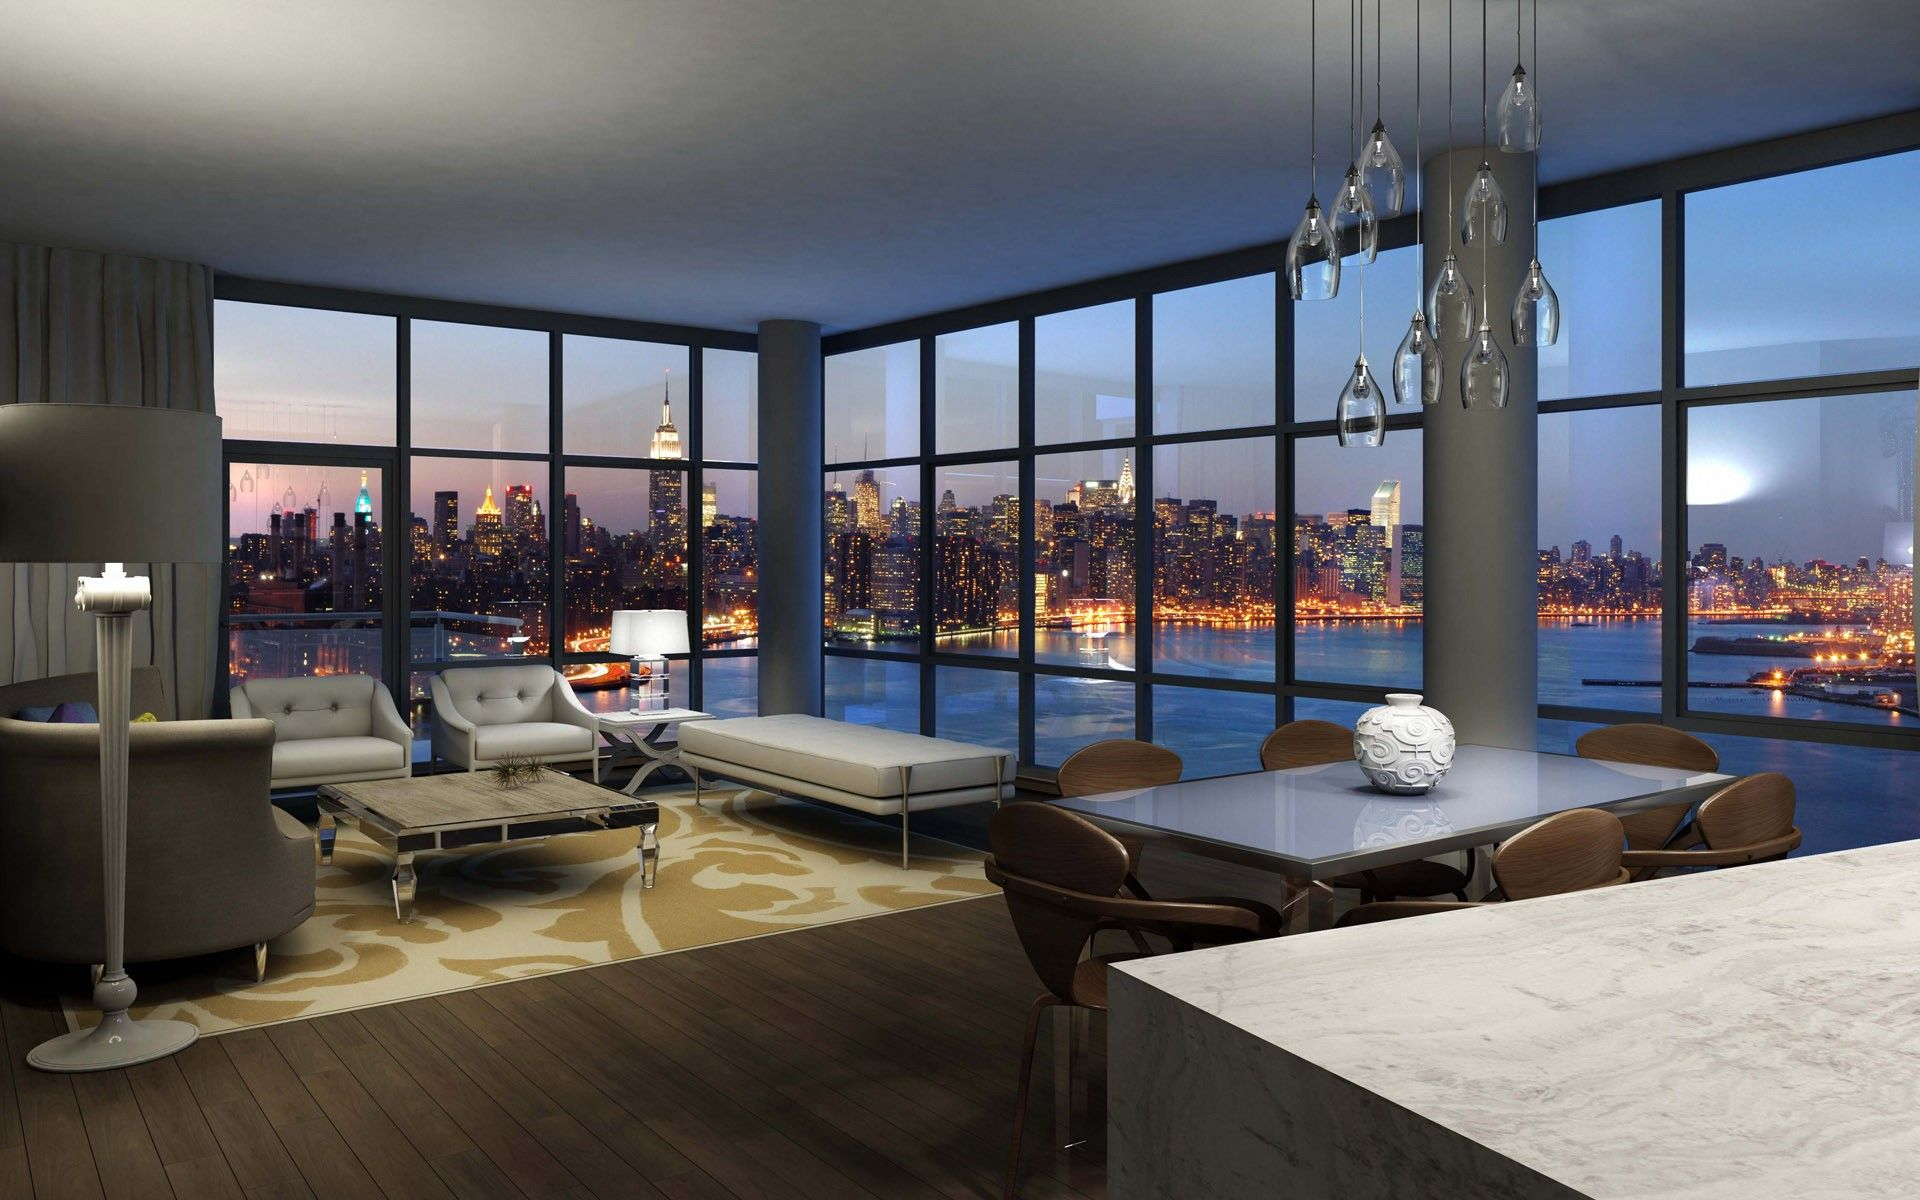 Interior design apartment with city view desktop wallpaper for Top luxury interior designers